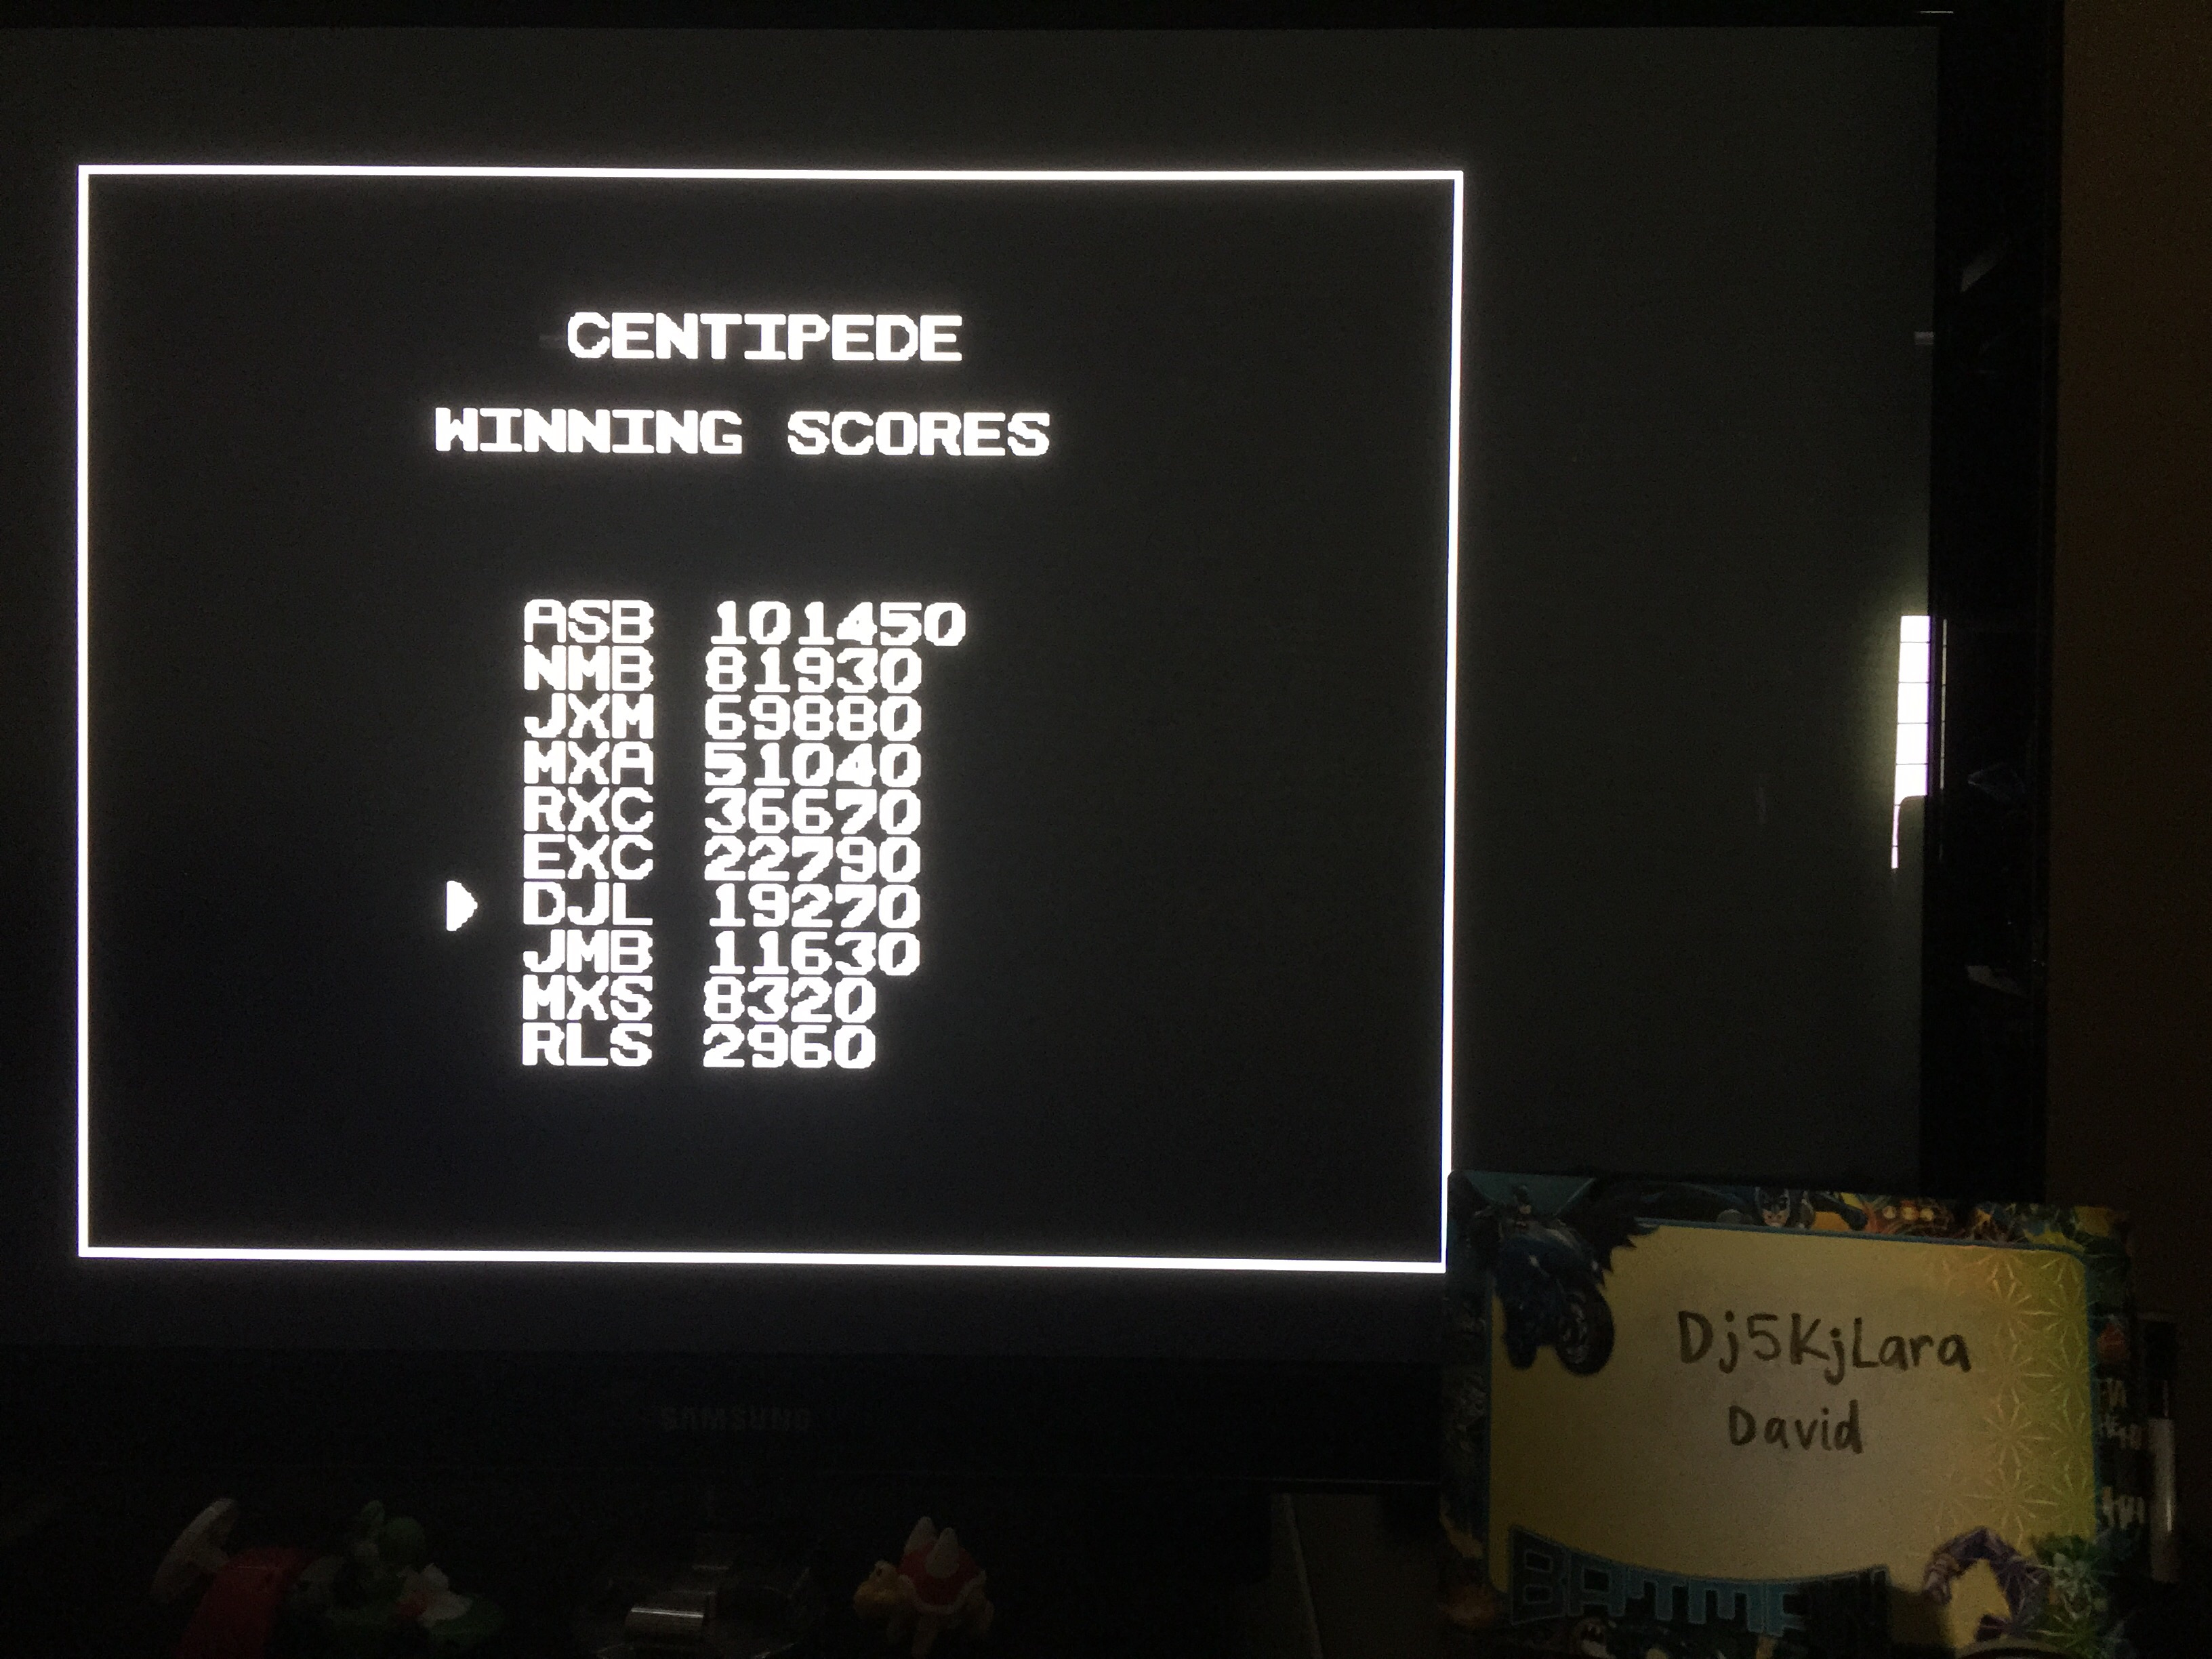 dj5kjlara: Arcade Classics: Centipede (Sega Genesis / MegaDrive Emulated) 19,270 points on 2014-10-25 14:17:54